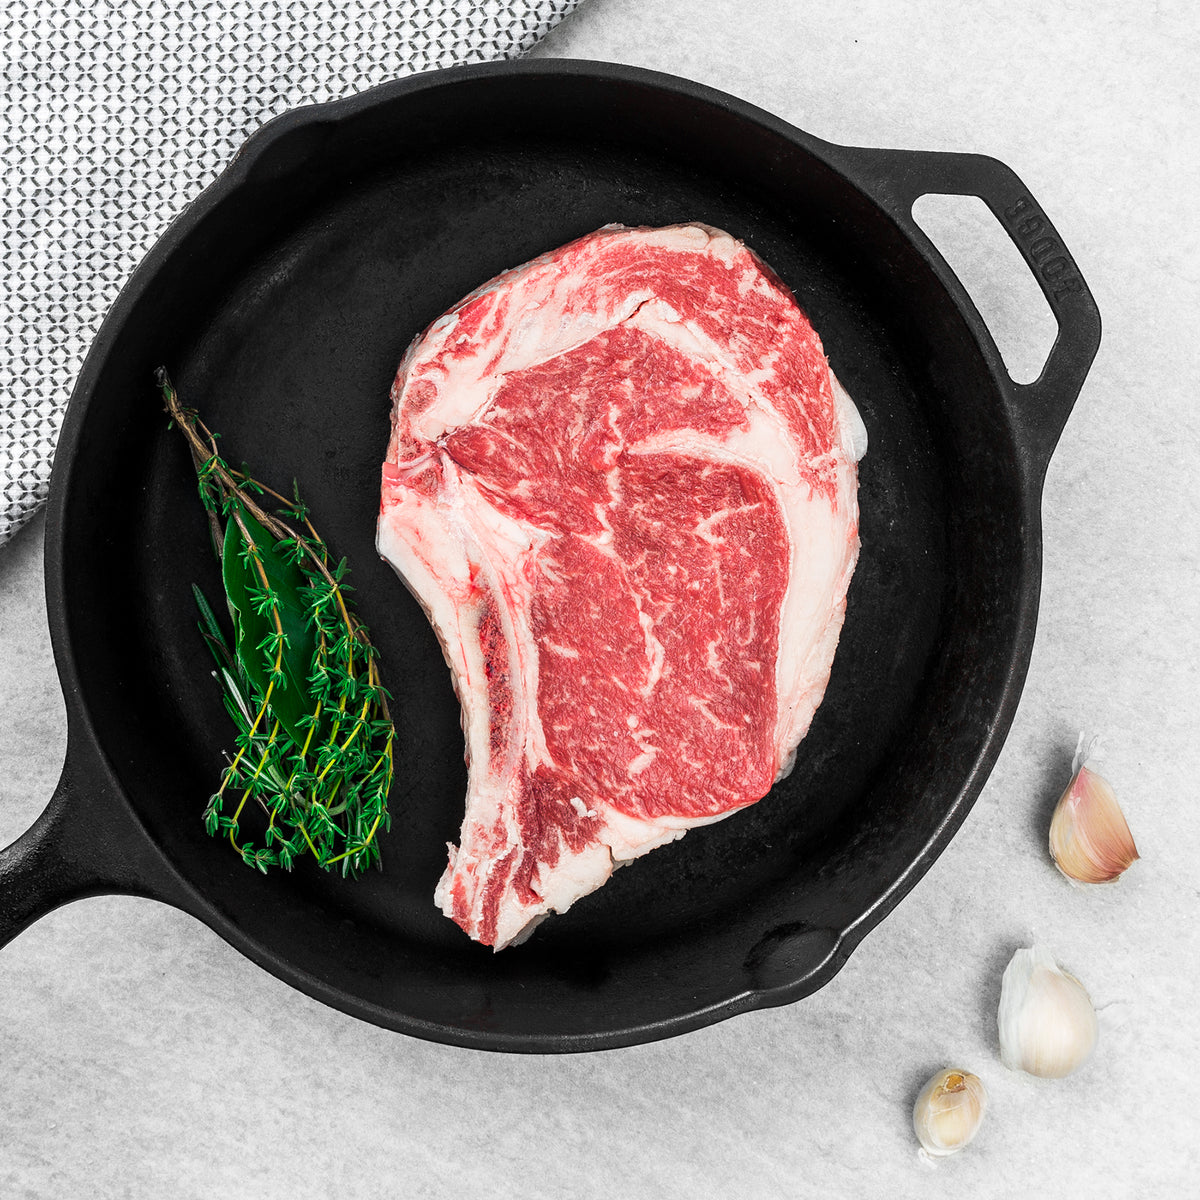 USDA Prime Black Angus Bone-in Ribeye